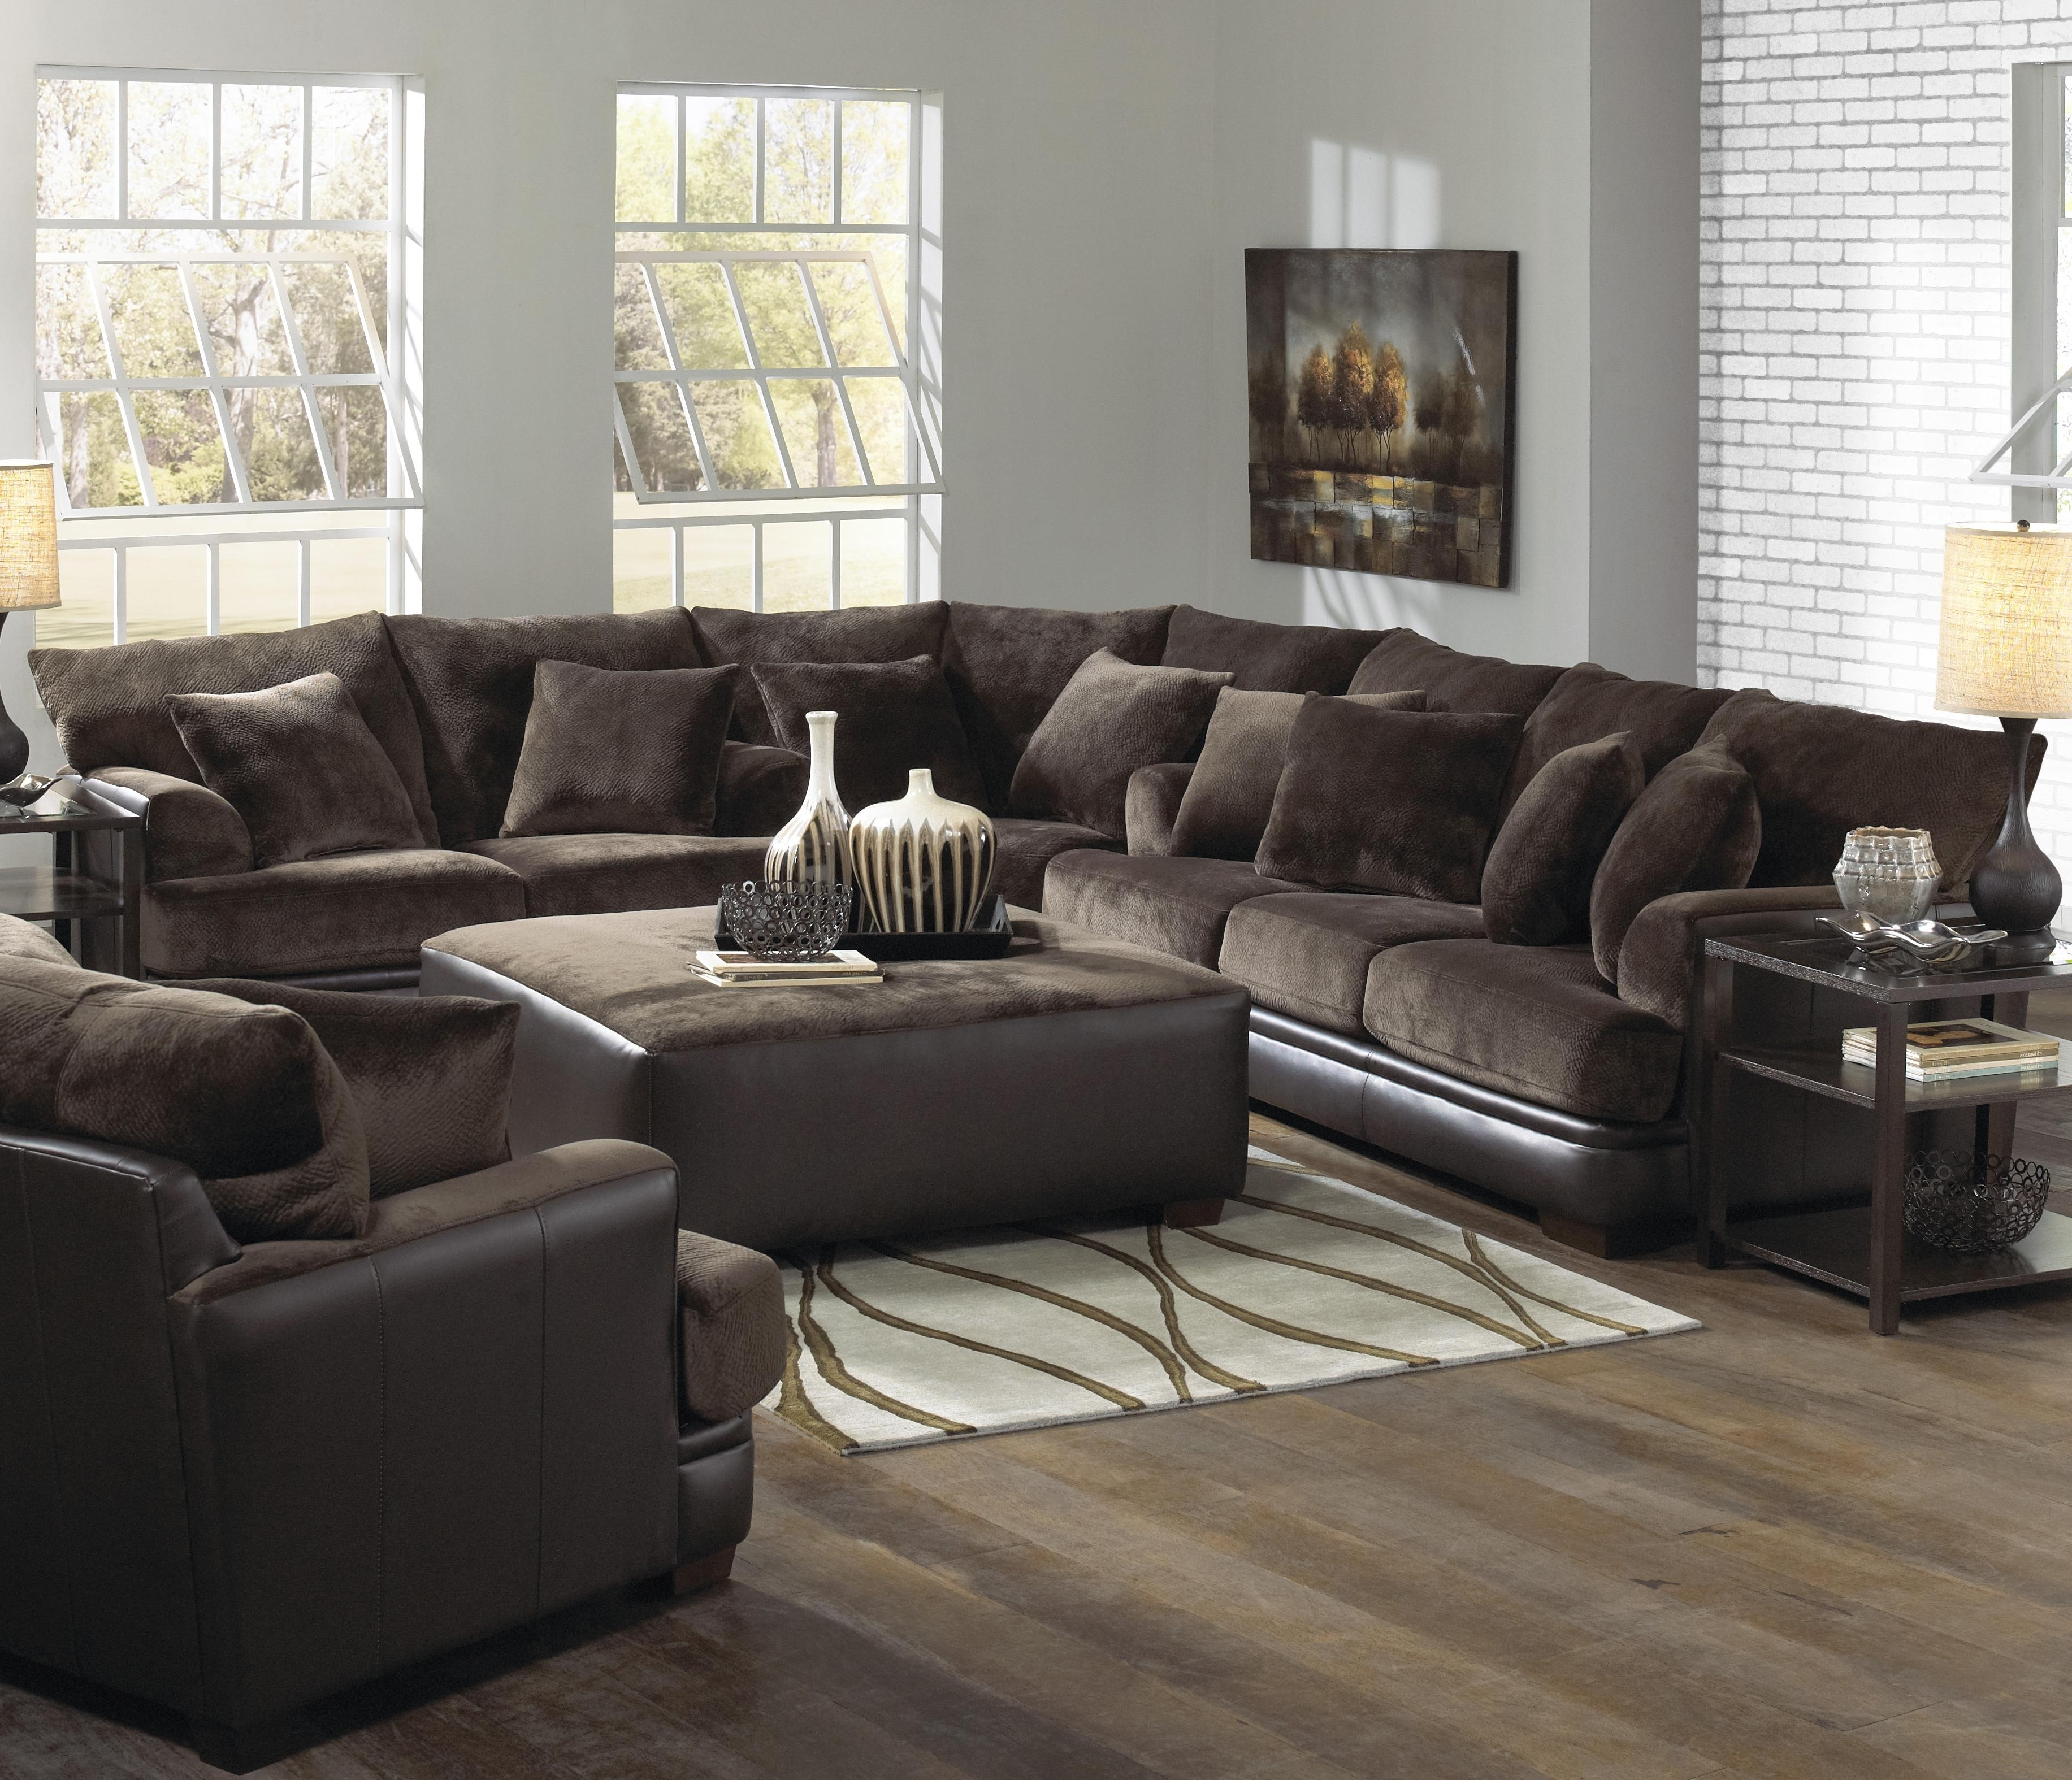 Favorite Amazing Large U Shaped Sectional Sofa 18 On Reclining Sectional Throughout Reclining U Shaped Sectionals (View 2 of 20)